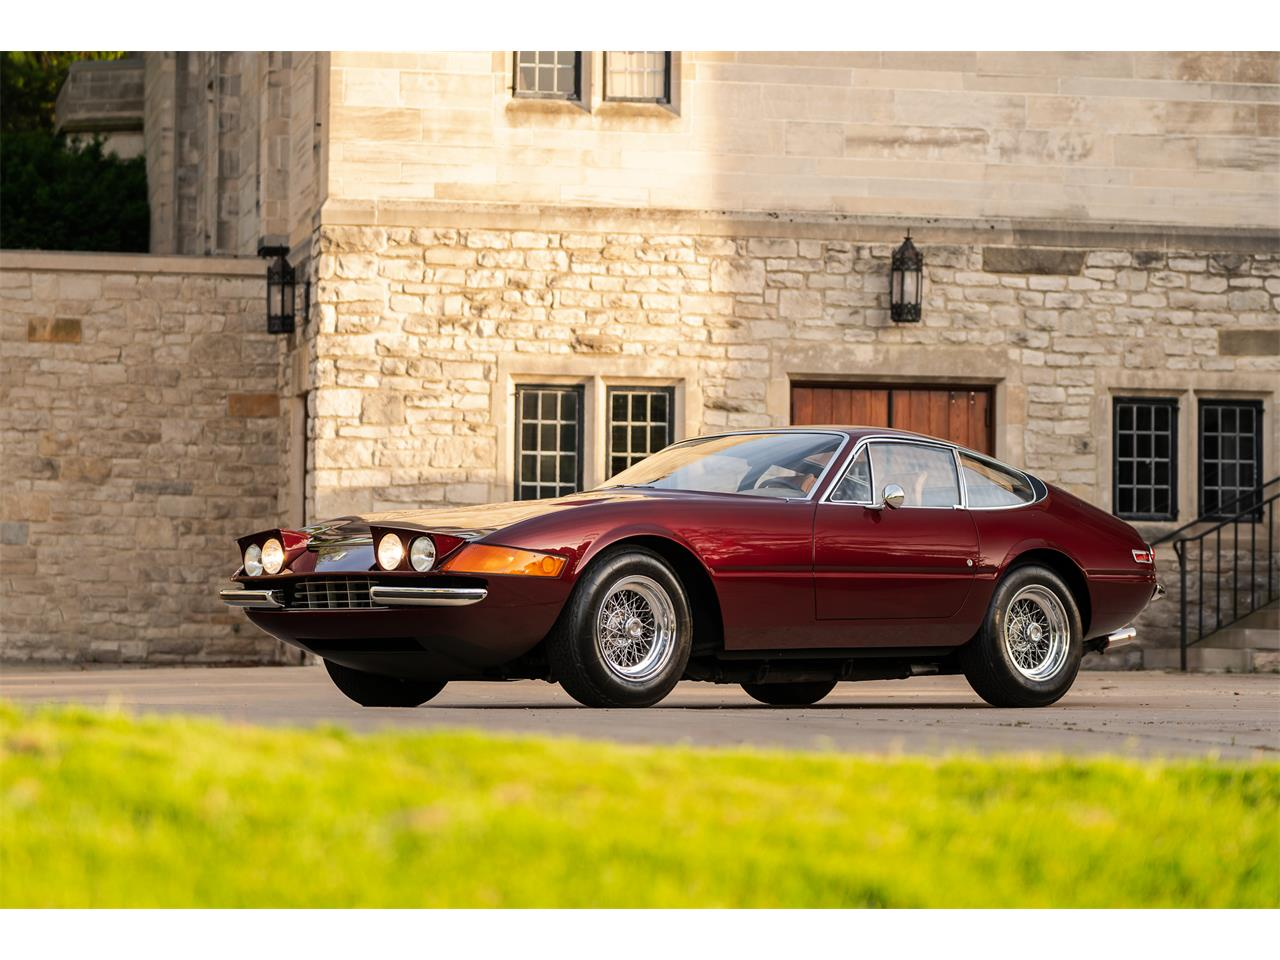 1972 Ferrari 365 GTB/4 Daytona (CC-1240382) for sale in Philadelphia, Pennsylvania